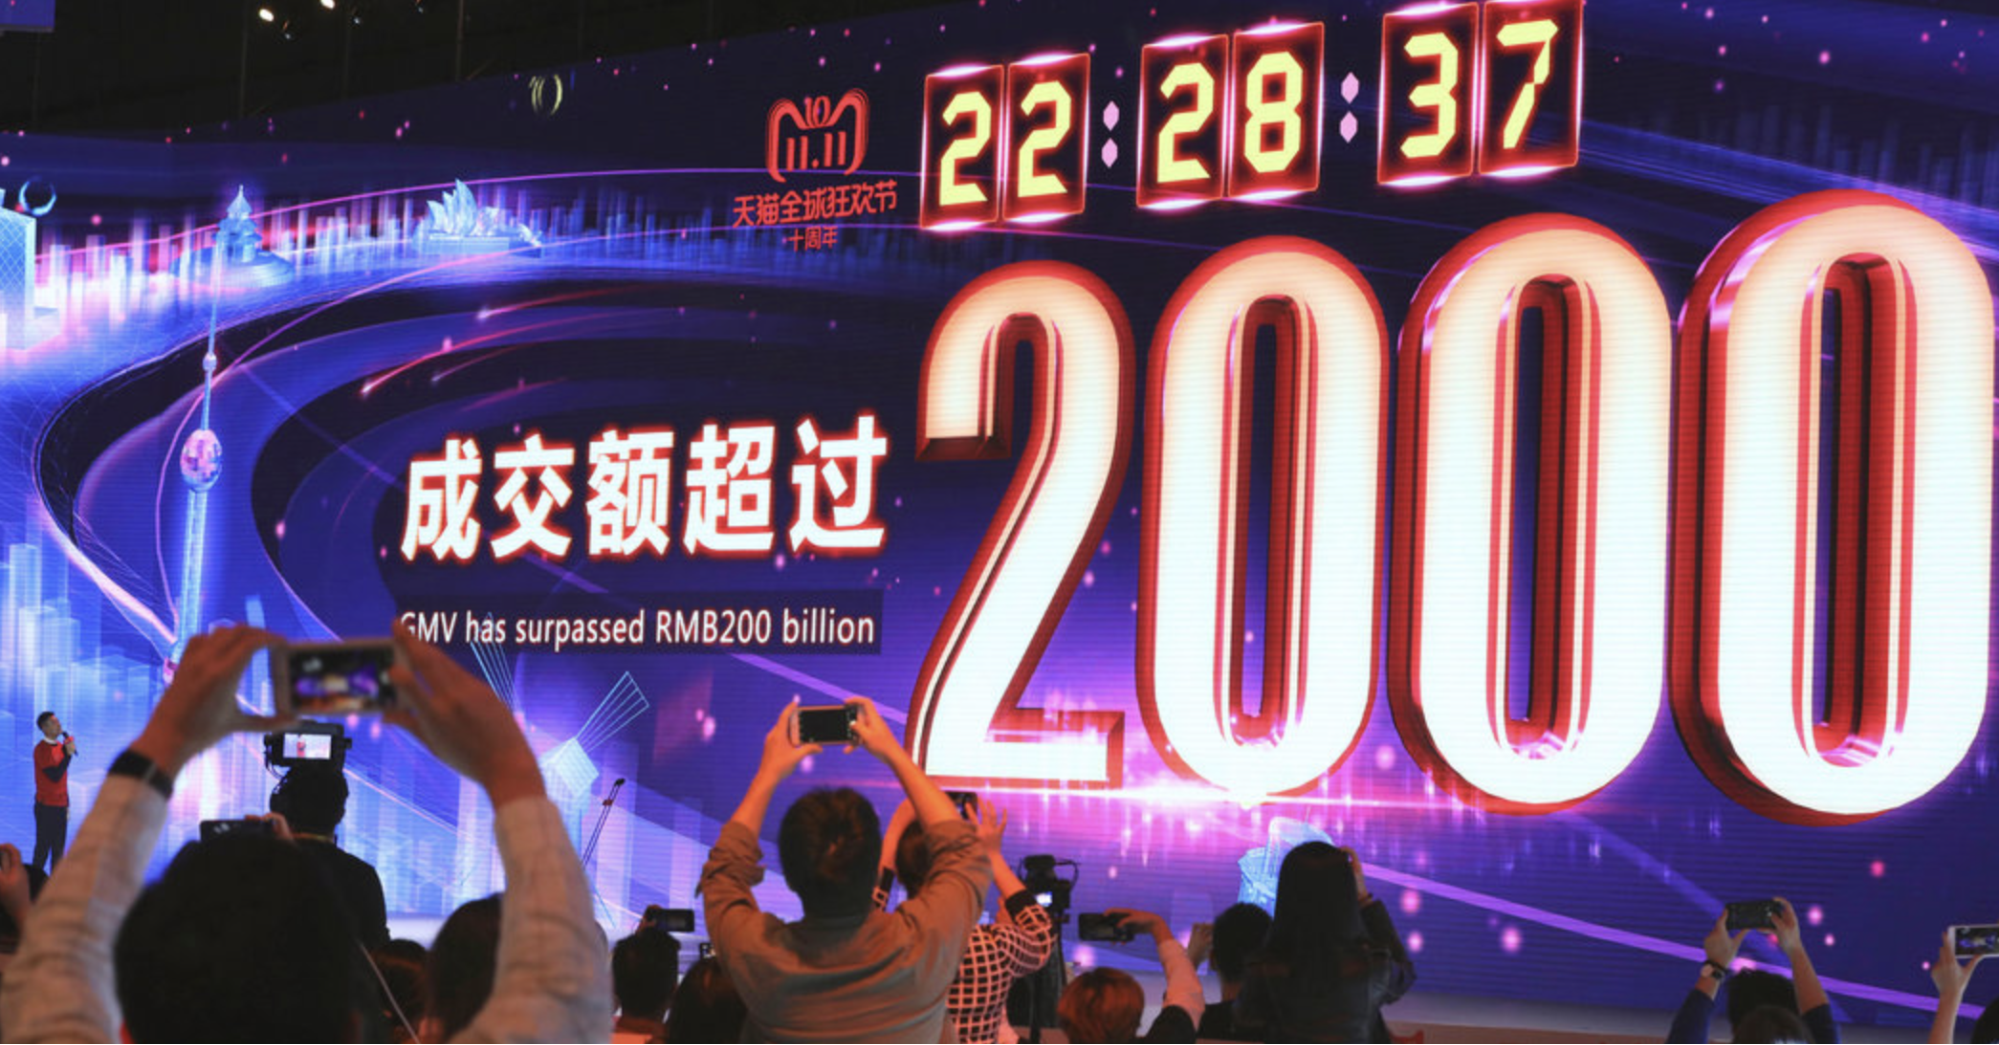 China S Online Shopping Culture Offers A Glimpse Of The West S Future Ebusiness Institute